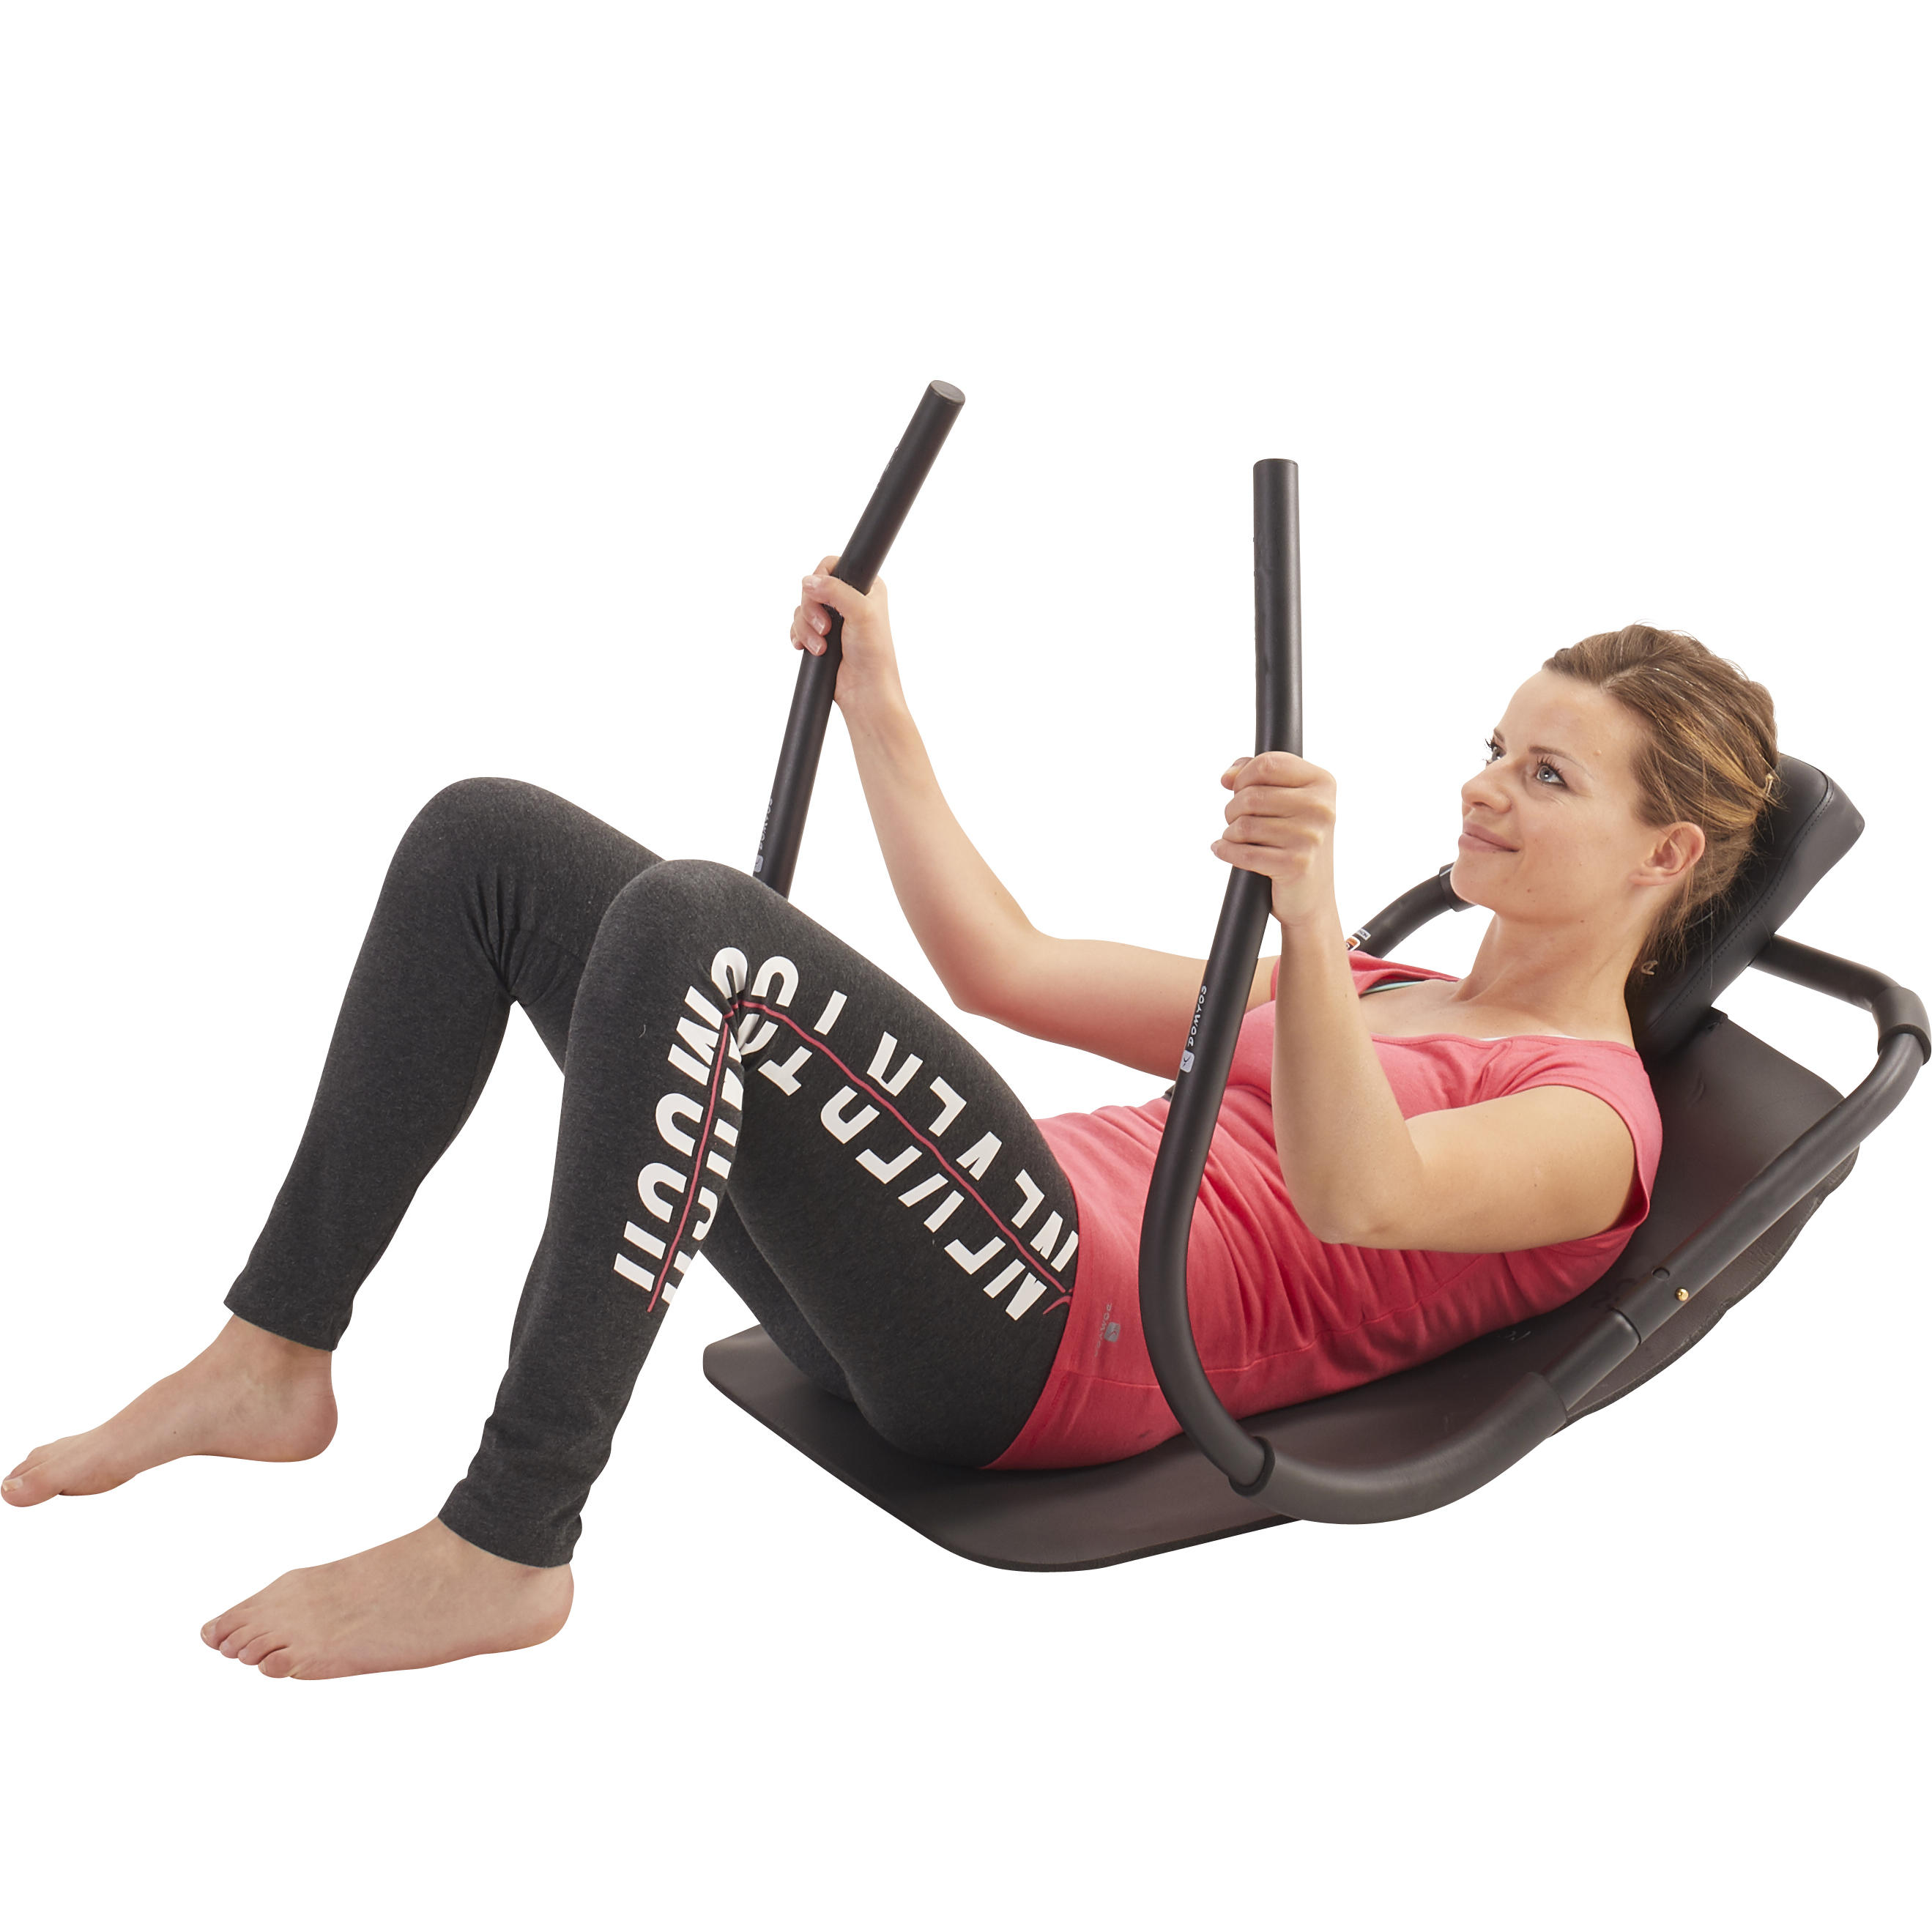 500 Pilates Toning Ergonomic and Comfortable Abs Exerciser